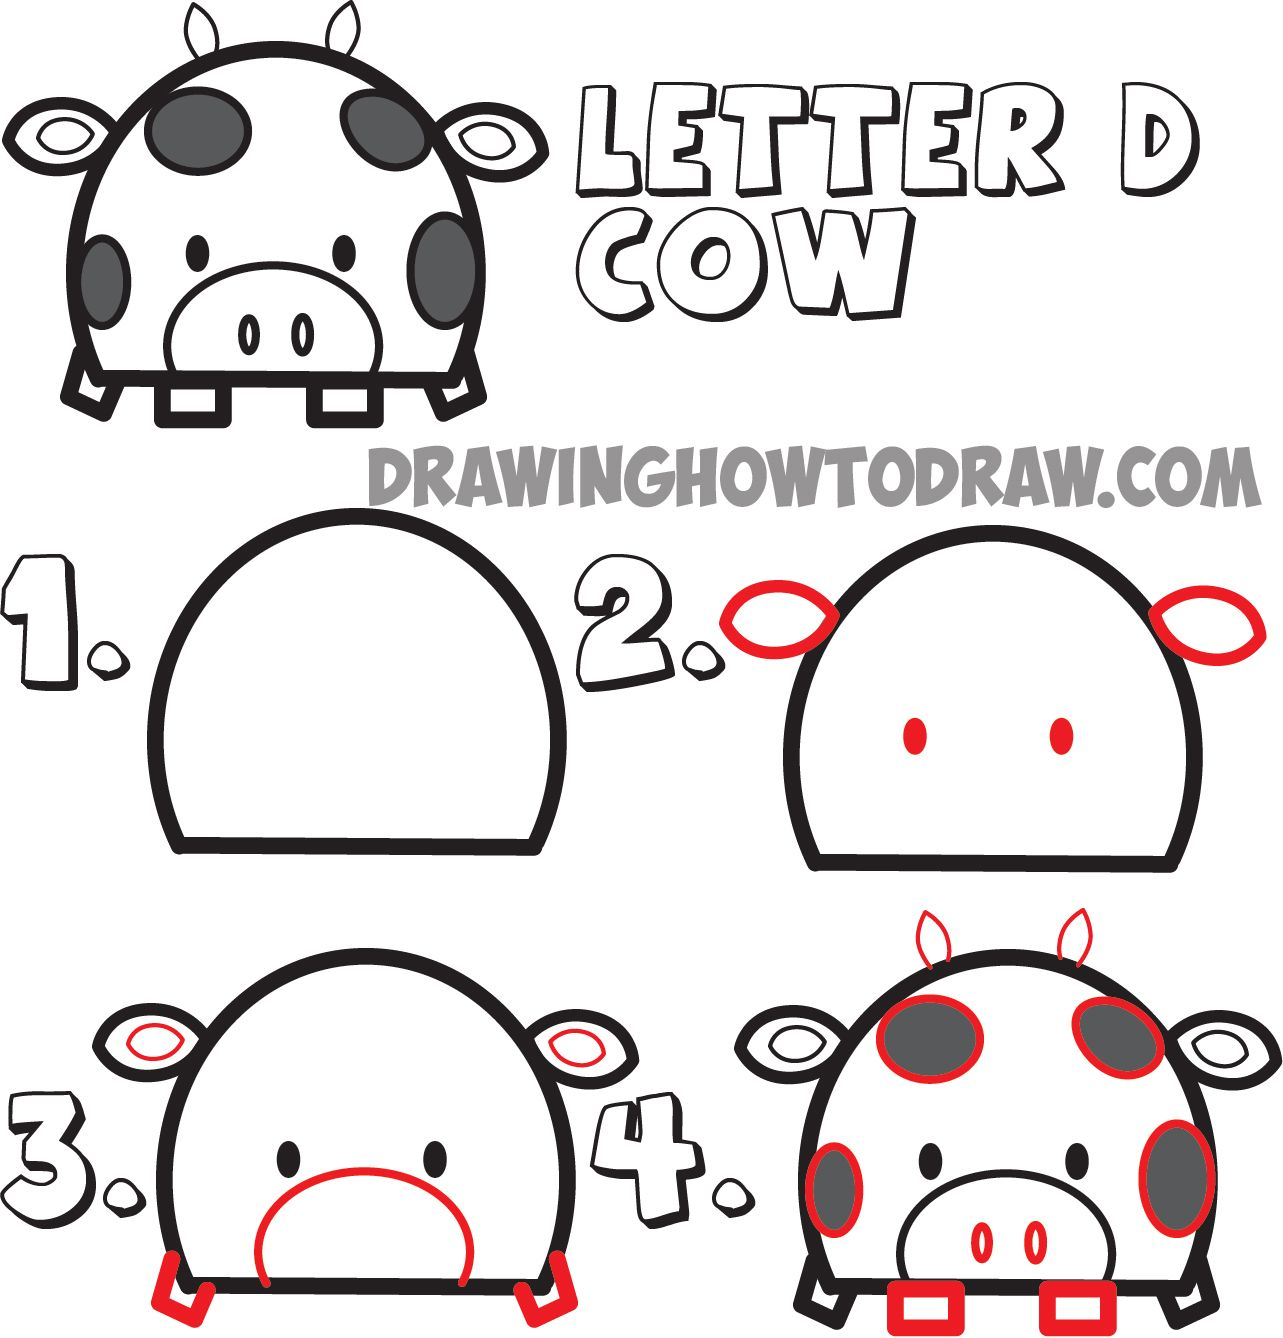 Huge Guide To Drawing Cartoon Animals From The Uppercase Letter D Drawing Tutorial For Kids How To Draw Step By Step Drawing Tutorials Cartoon Drawings Of Animals Drawing Tutorials